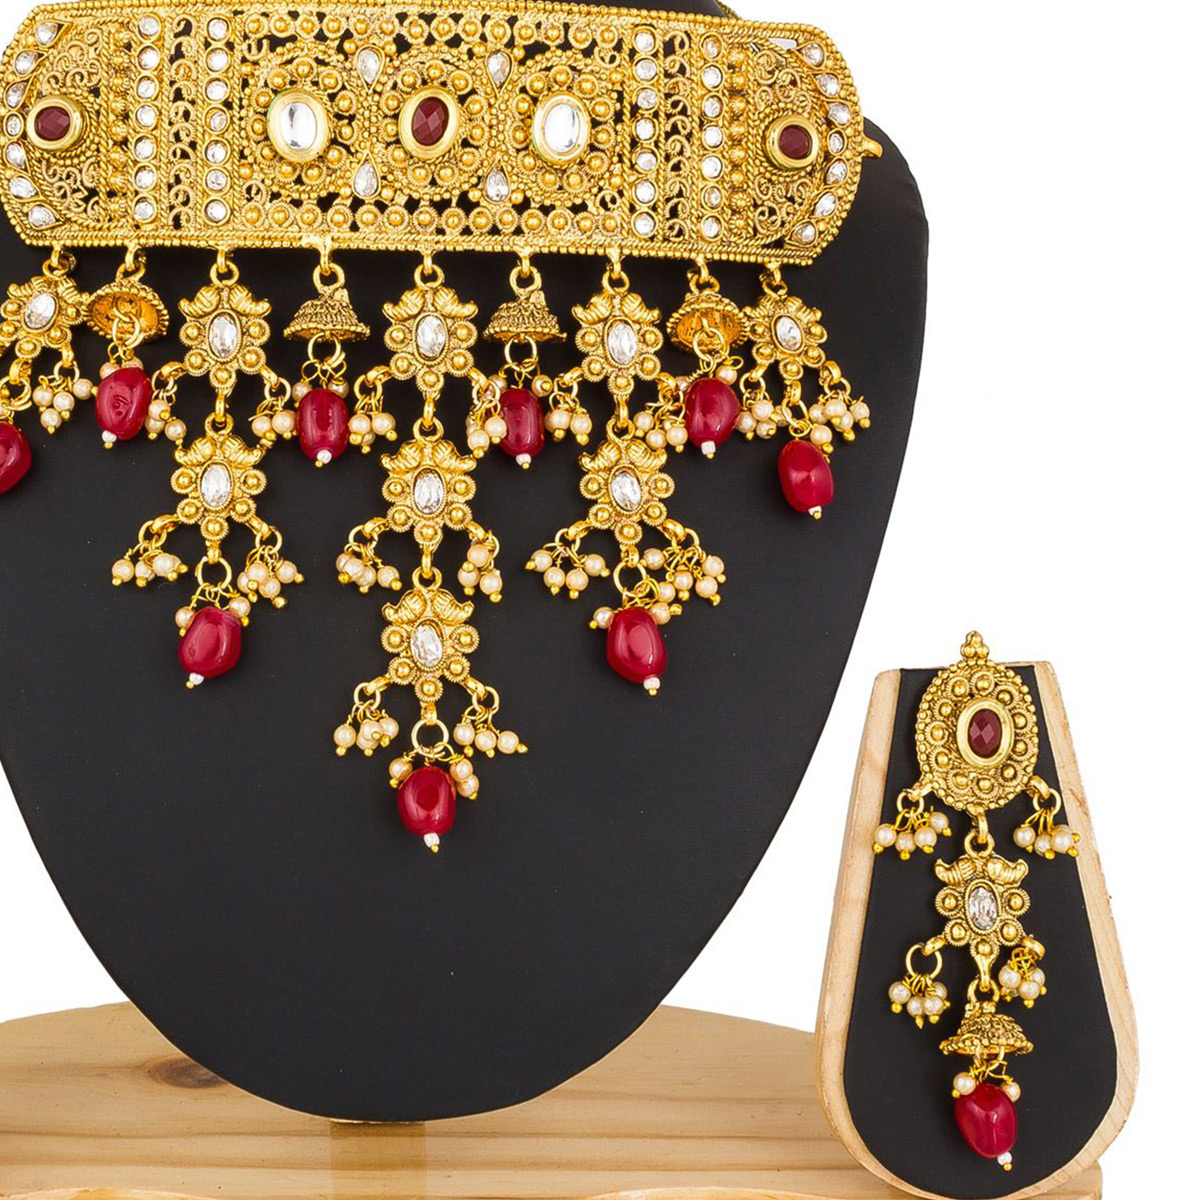 Ravishing Golden Colored Stone Work Mix Metal Necklace Set